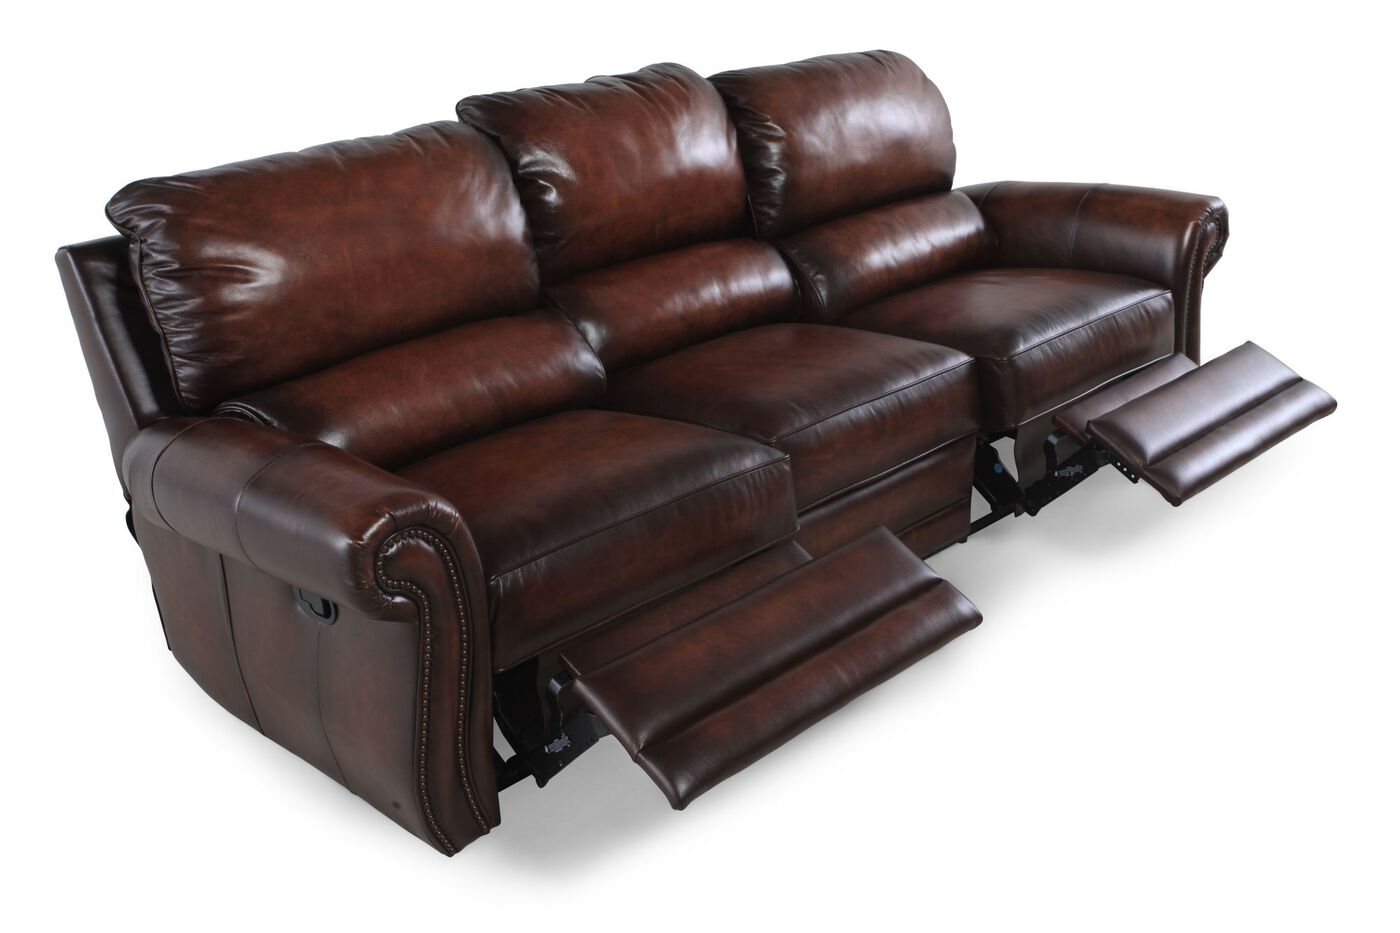 Double reclining leather sofa homelegance quinn double for Sectional sofa with double recliner